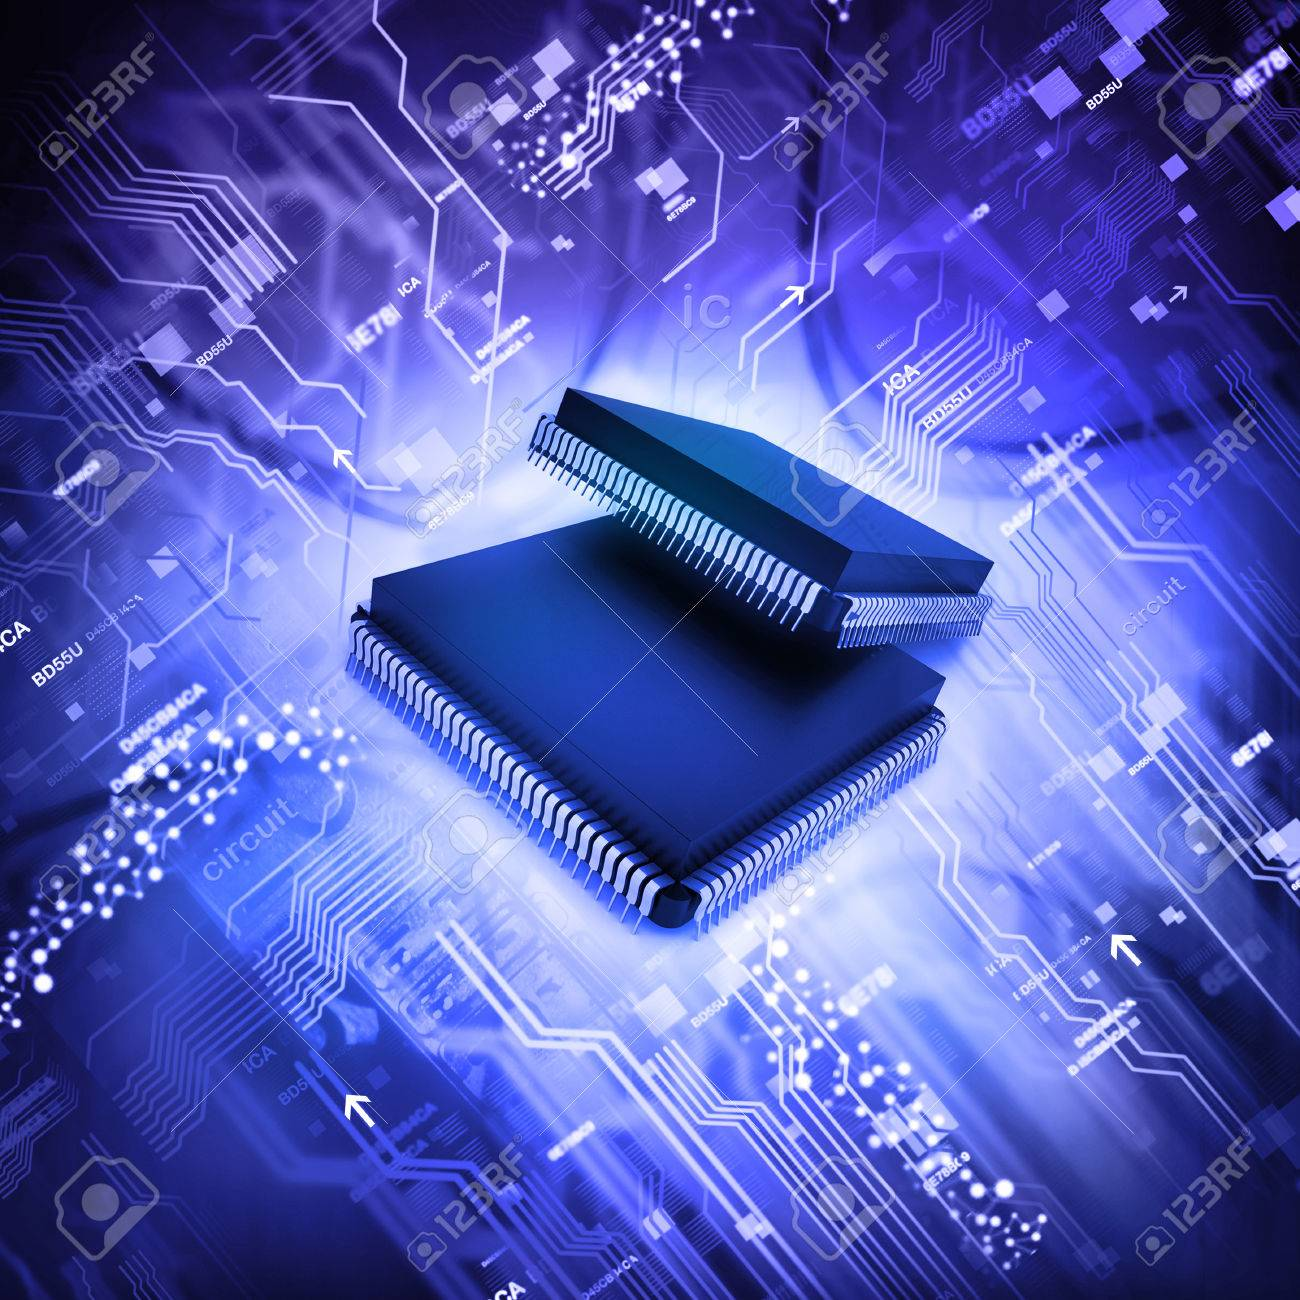 Electronic Integrated Circuit Chip Stock Photo Picture And Royalty Free Image 48053238